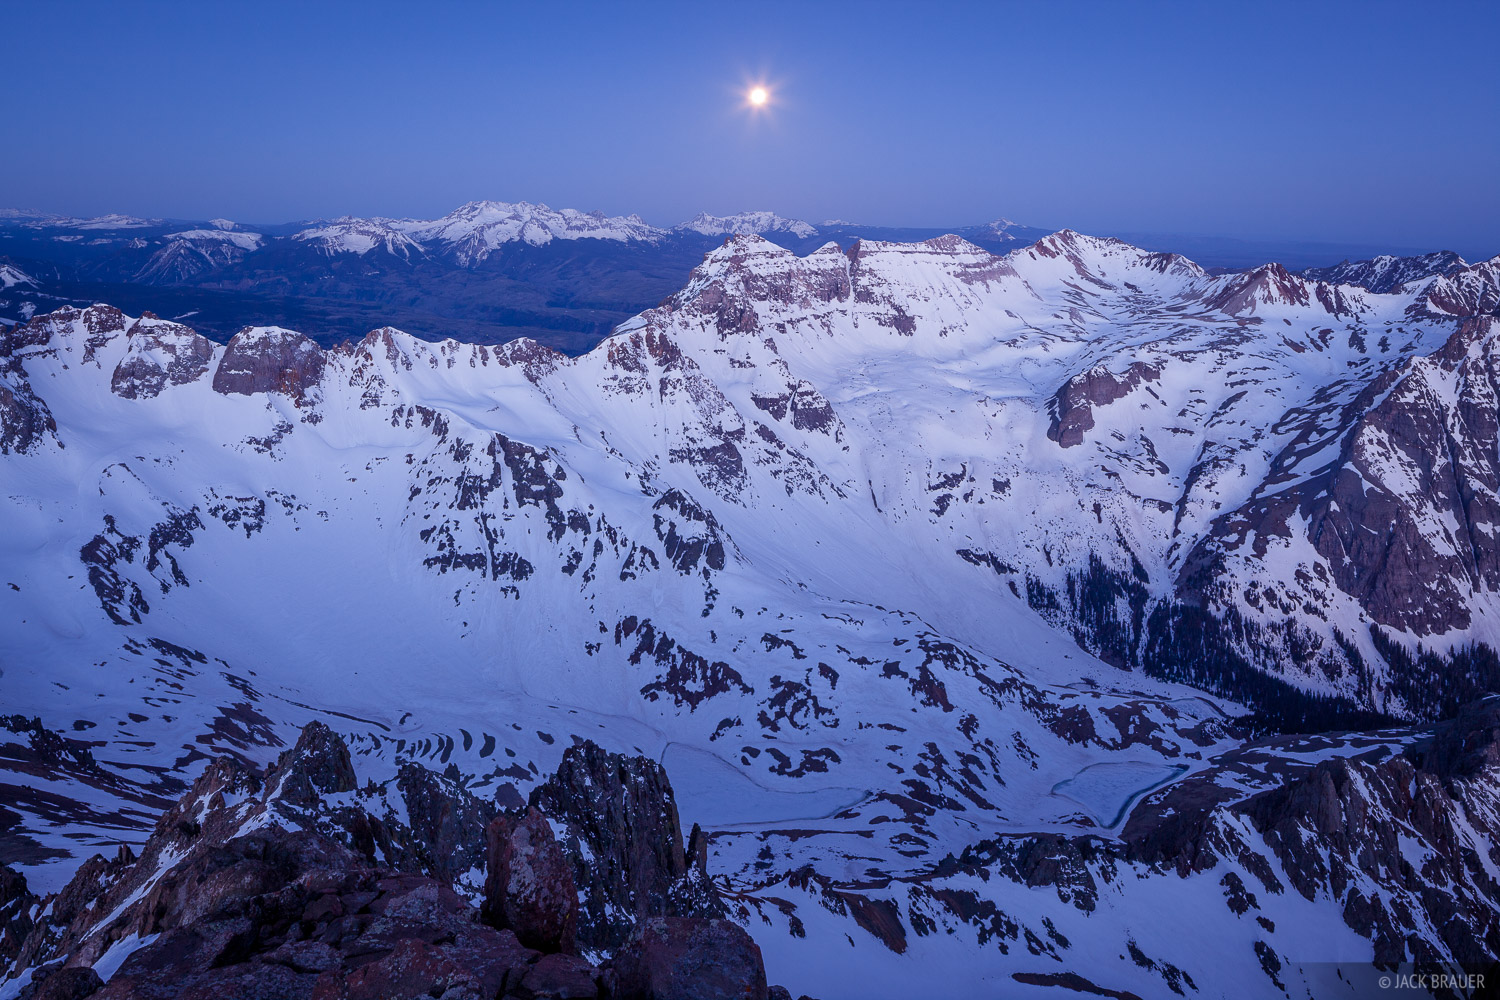 Colorado,Mt. Sneffels,San Juan Mountains,Sneffels Range, Dallas Peak, moon, photo